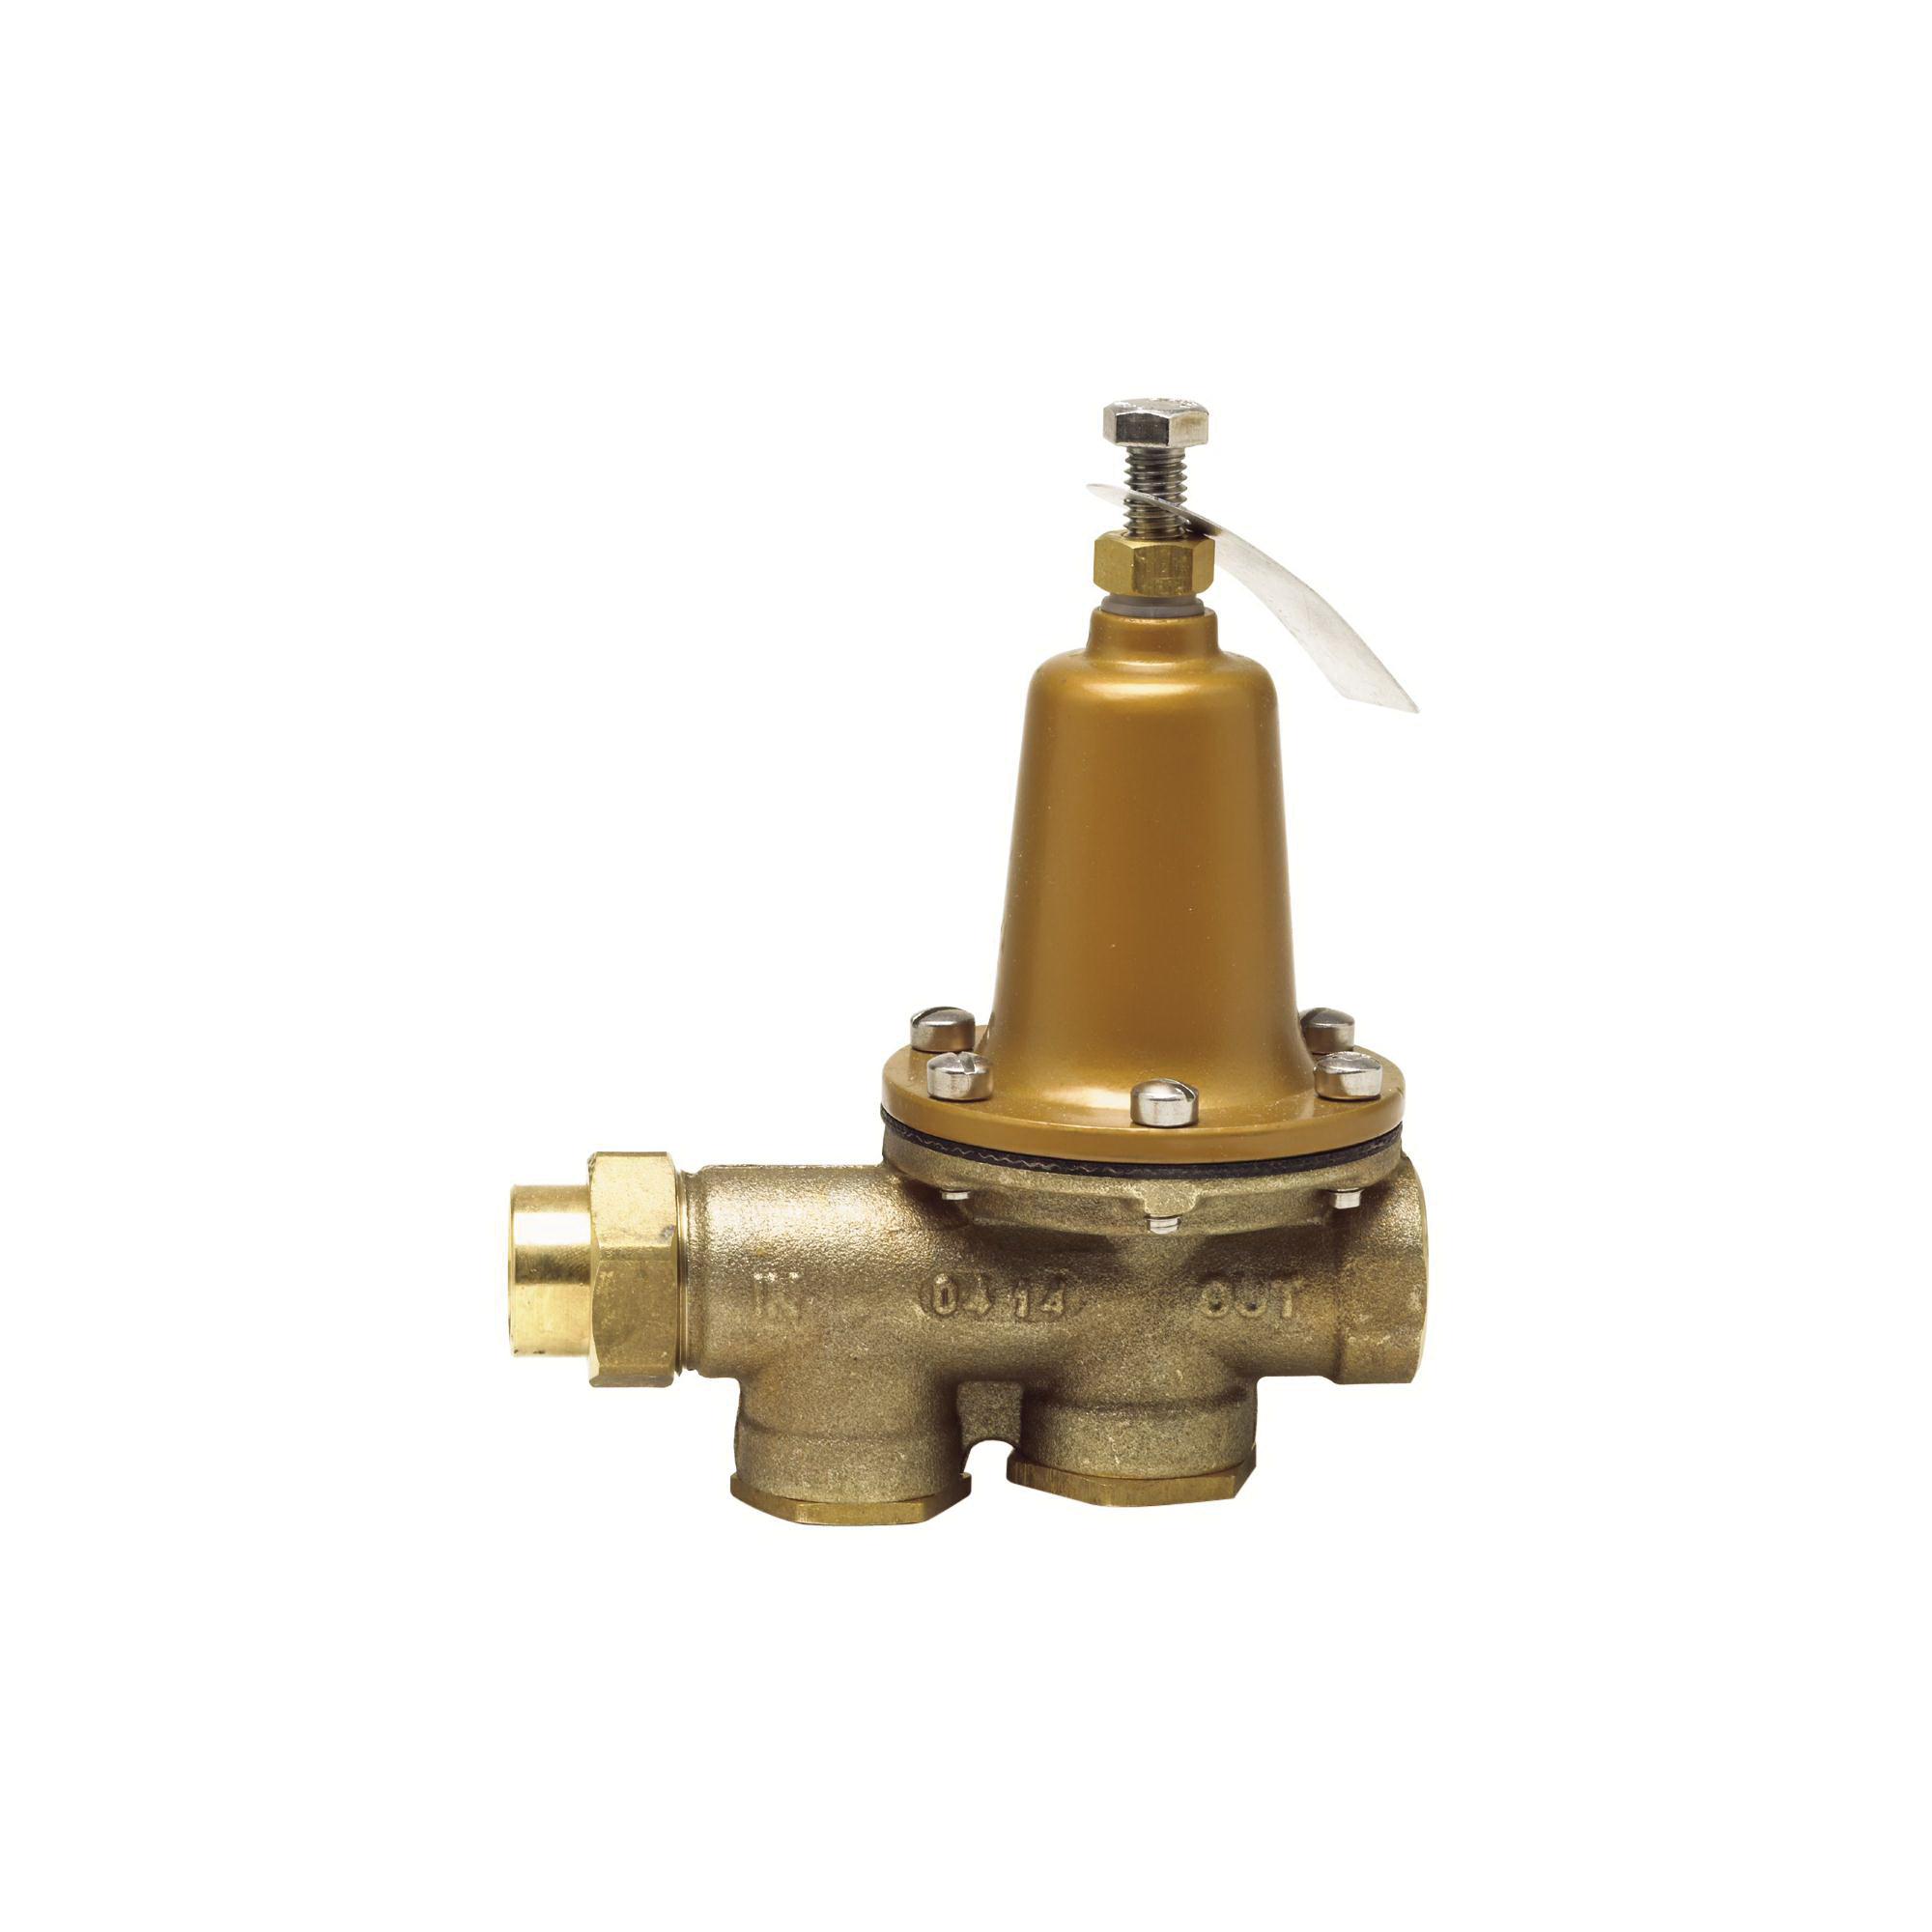 WATTS® LF25AUB-Z3 Standard Capacity Lead Free Pressure Reducing Valve with Bypass Check Valve, 2 in, FNPT Union x FNPT